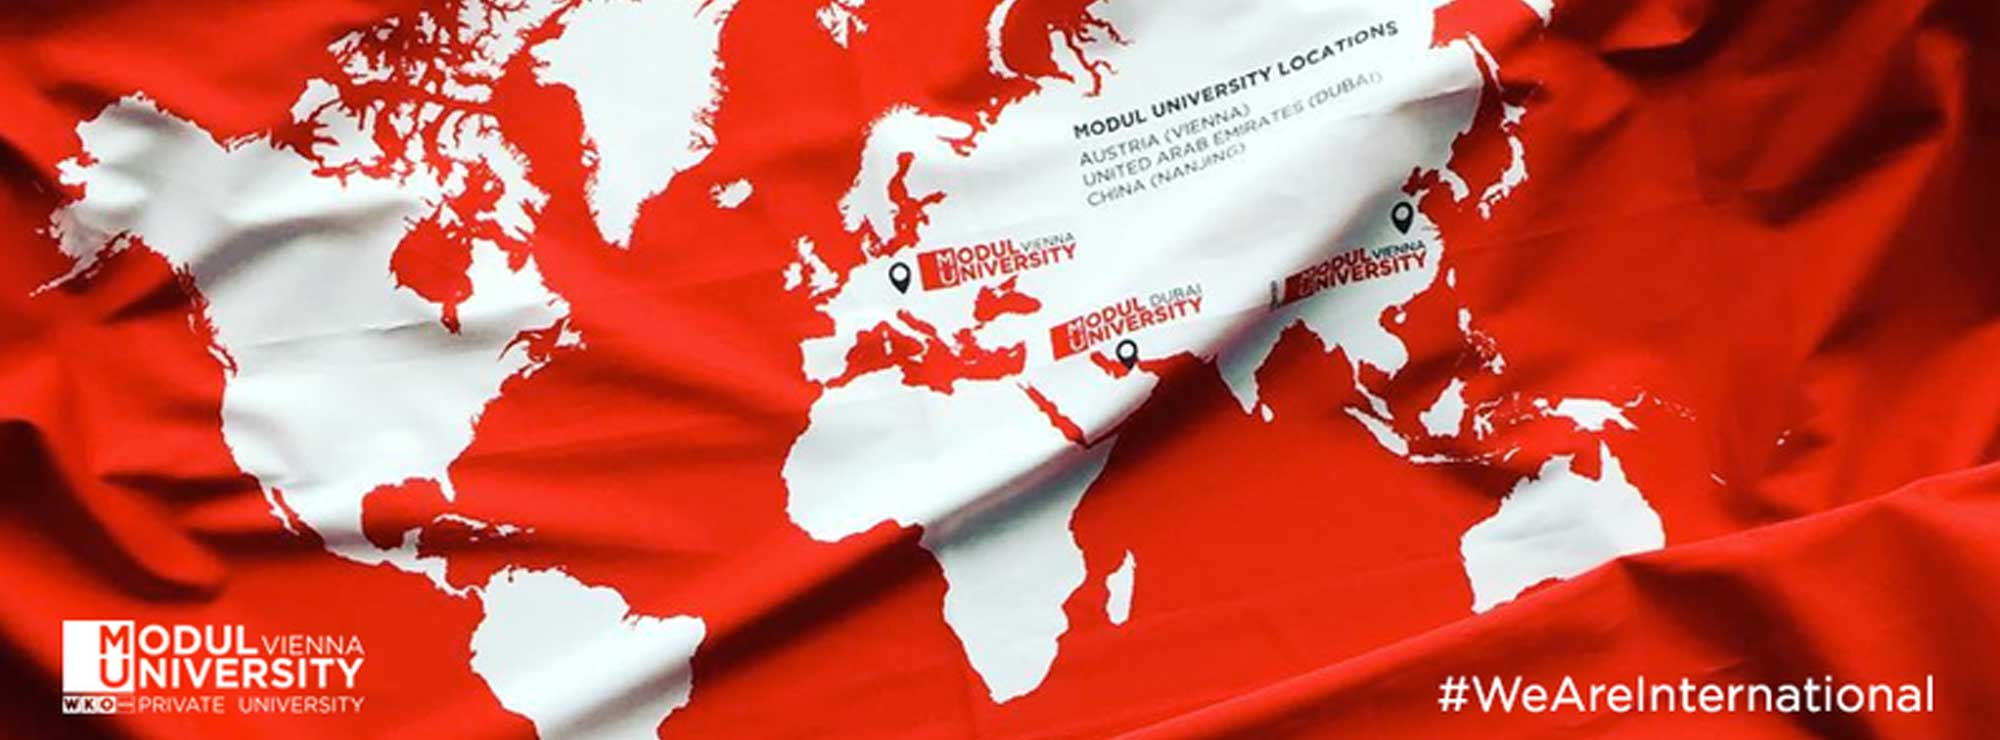 MODUL Global Campuses